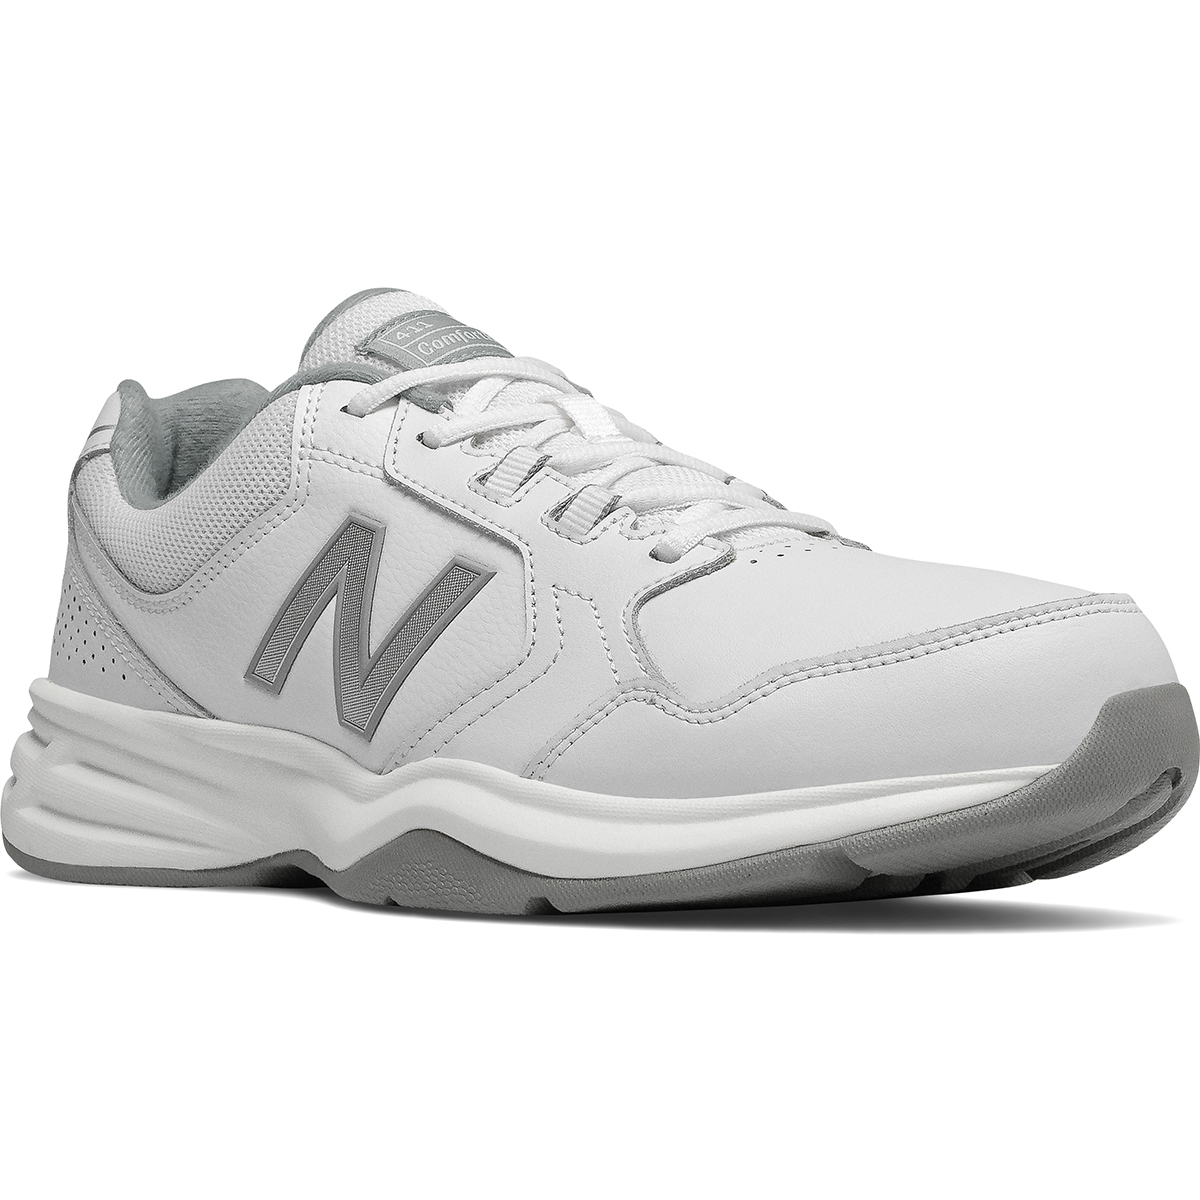 New Balance Men's 411 Walking Shoes - White, 10.5